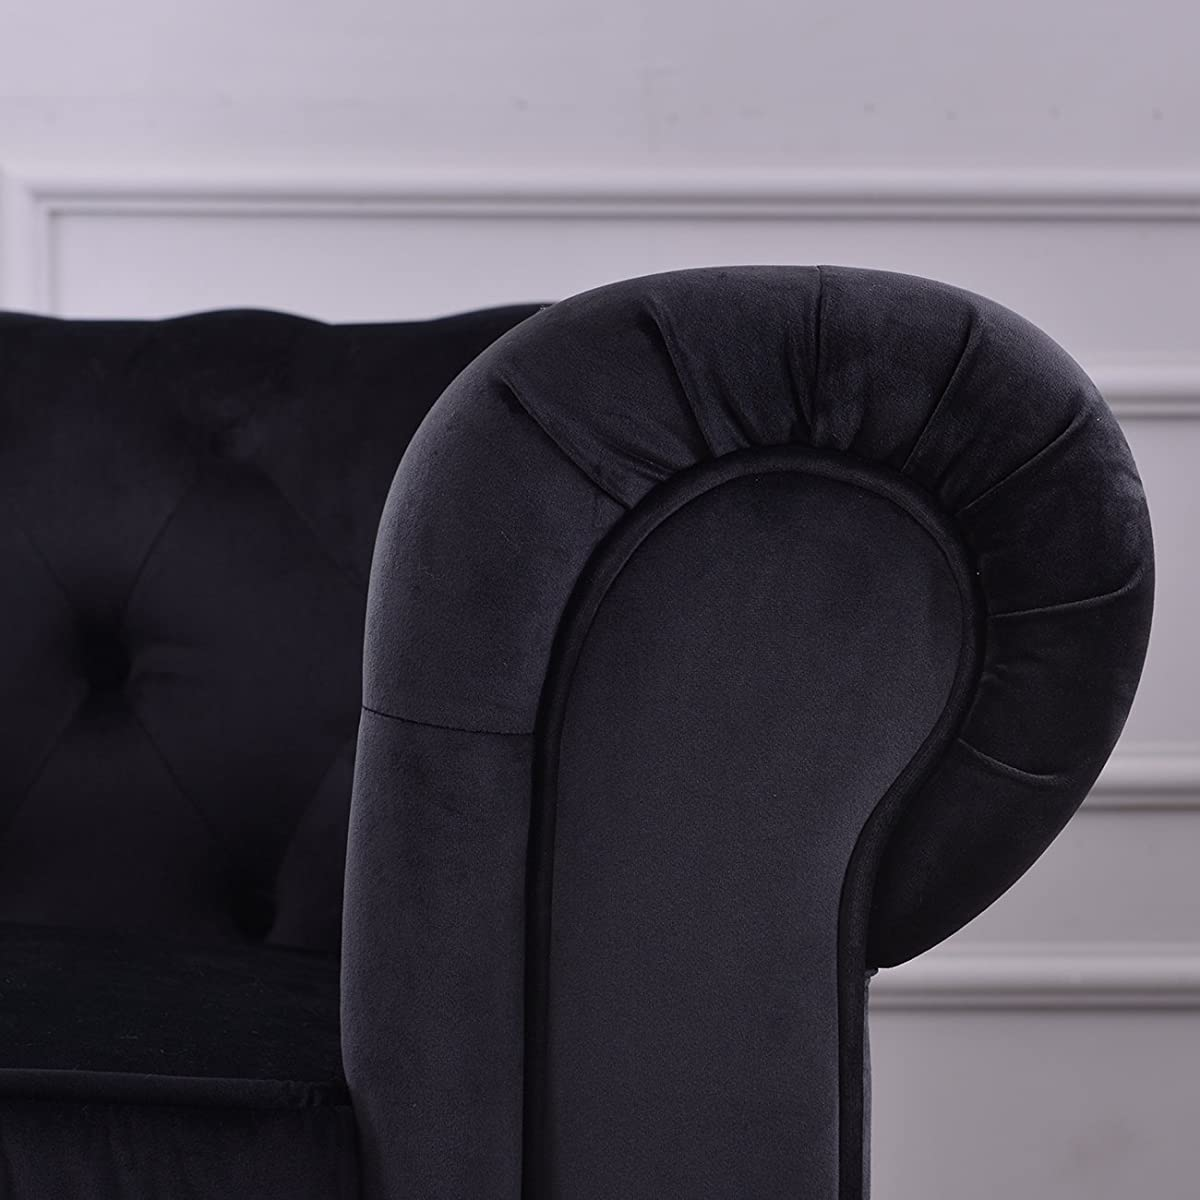 Belleze Classic Scroll Arm Large Velvet Living Room Accent Chair Ultra Soft Tufted, Black